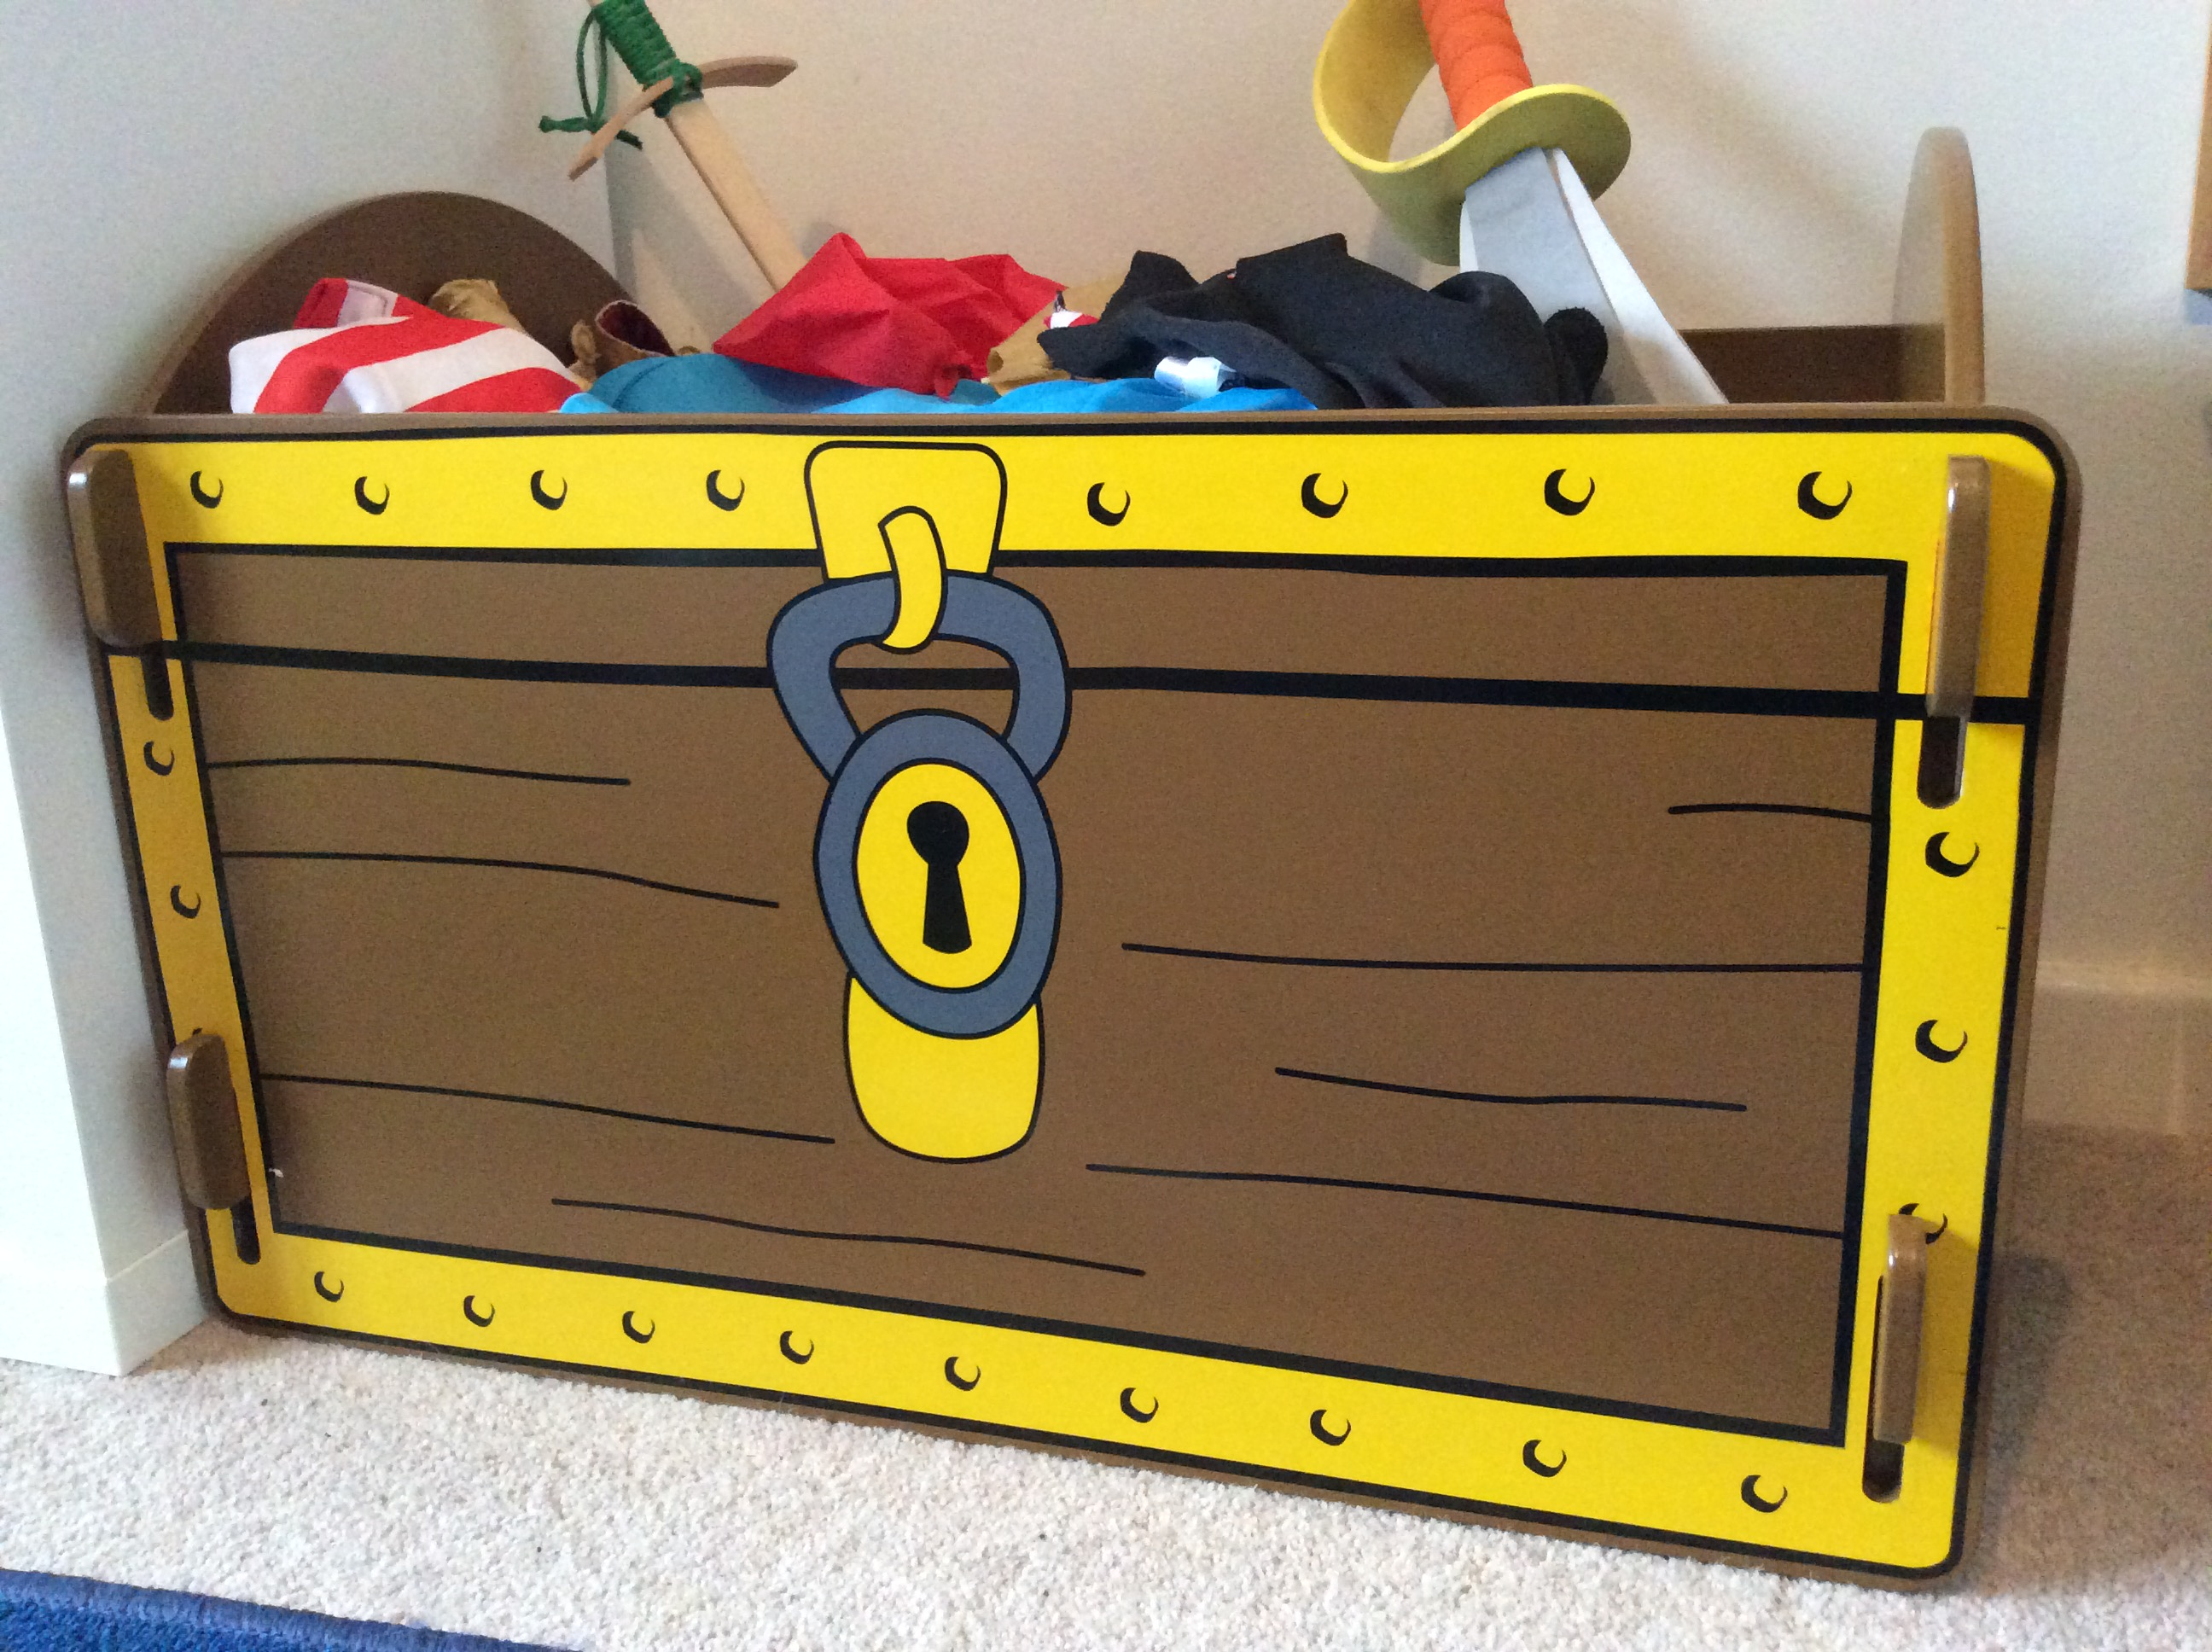 Toy Treasure Chest Beach : Review kidsaw pirate treasure chest toy box hodgepodgedays